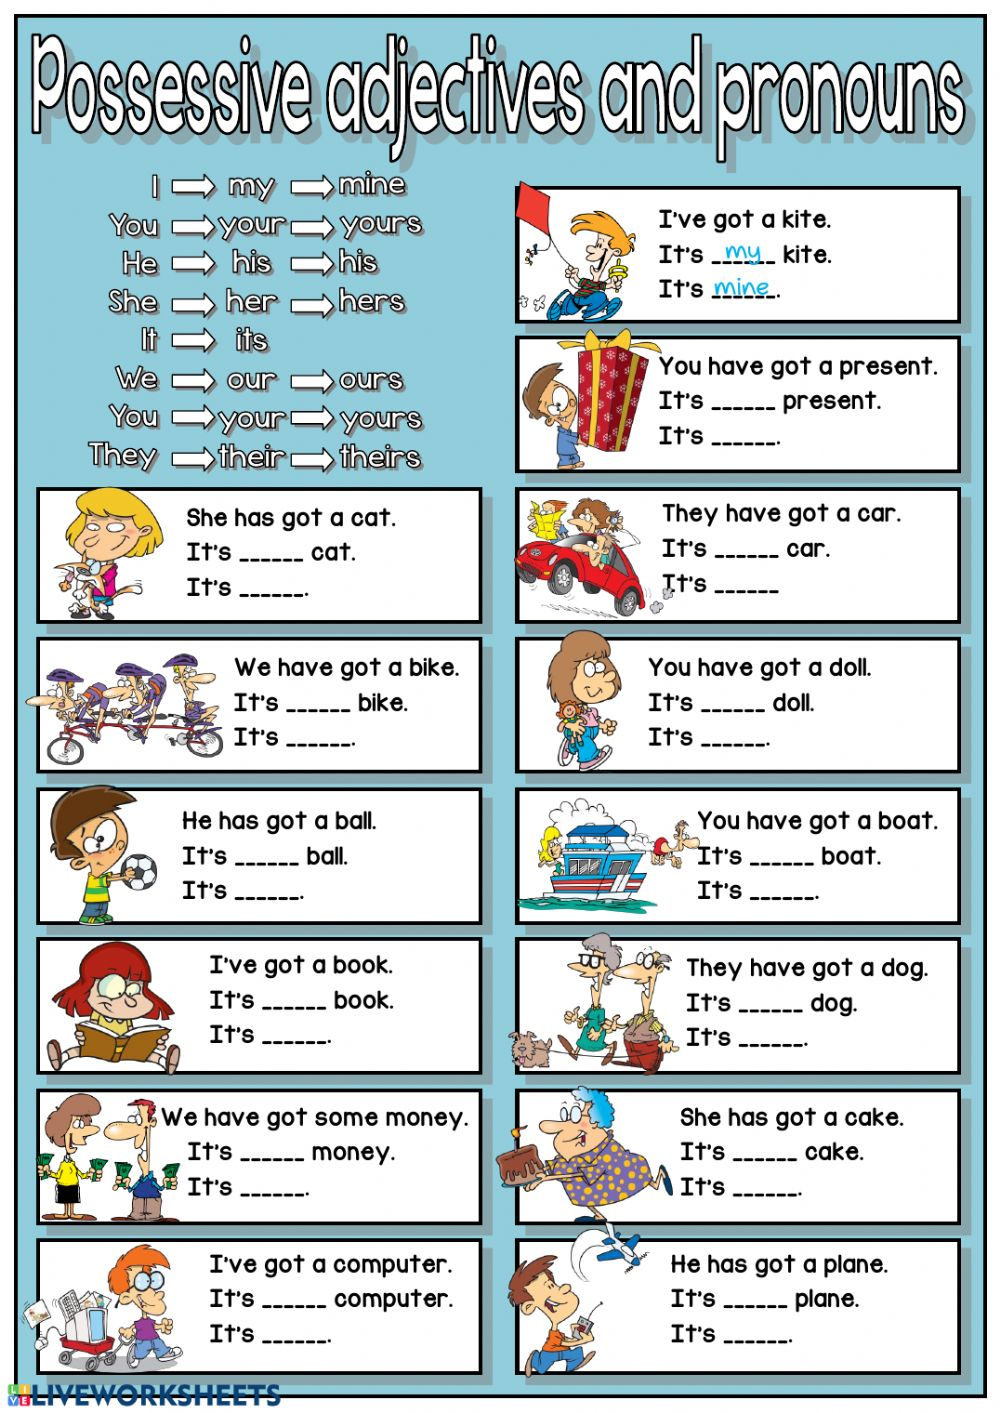 Possessive adjectives and pronouns Interactive worksheet